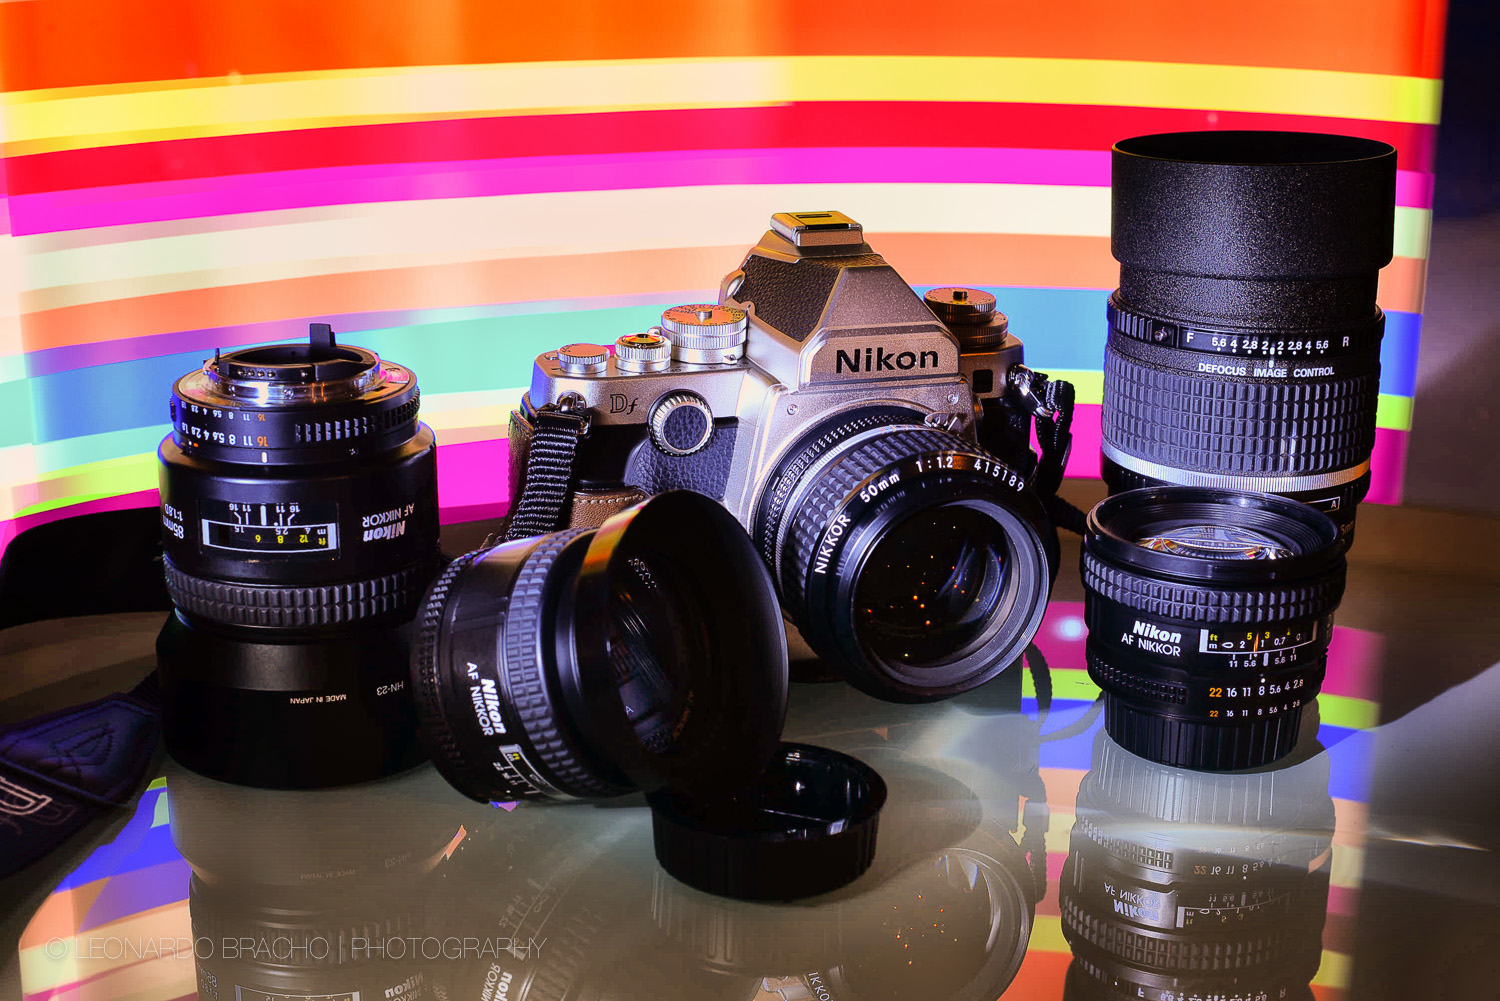 Nikon Df and Primes. Nikkor 85mm f/1.8D,  24mm f/2.8D, on board Nikkor 50mm f/1.2 AIS Manual, 20mm f/2.8D, and the sublime AF DC Nikkor 135 mm f/2.0D.